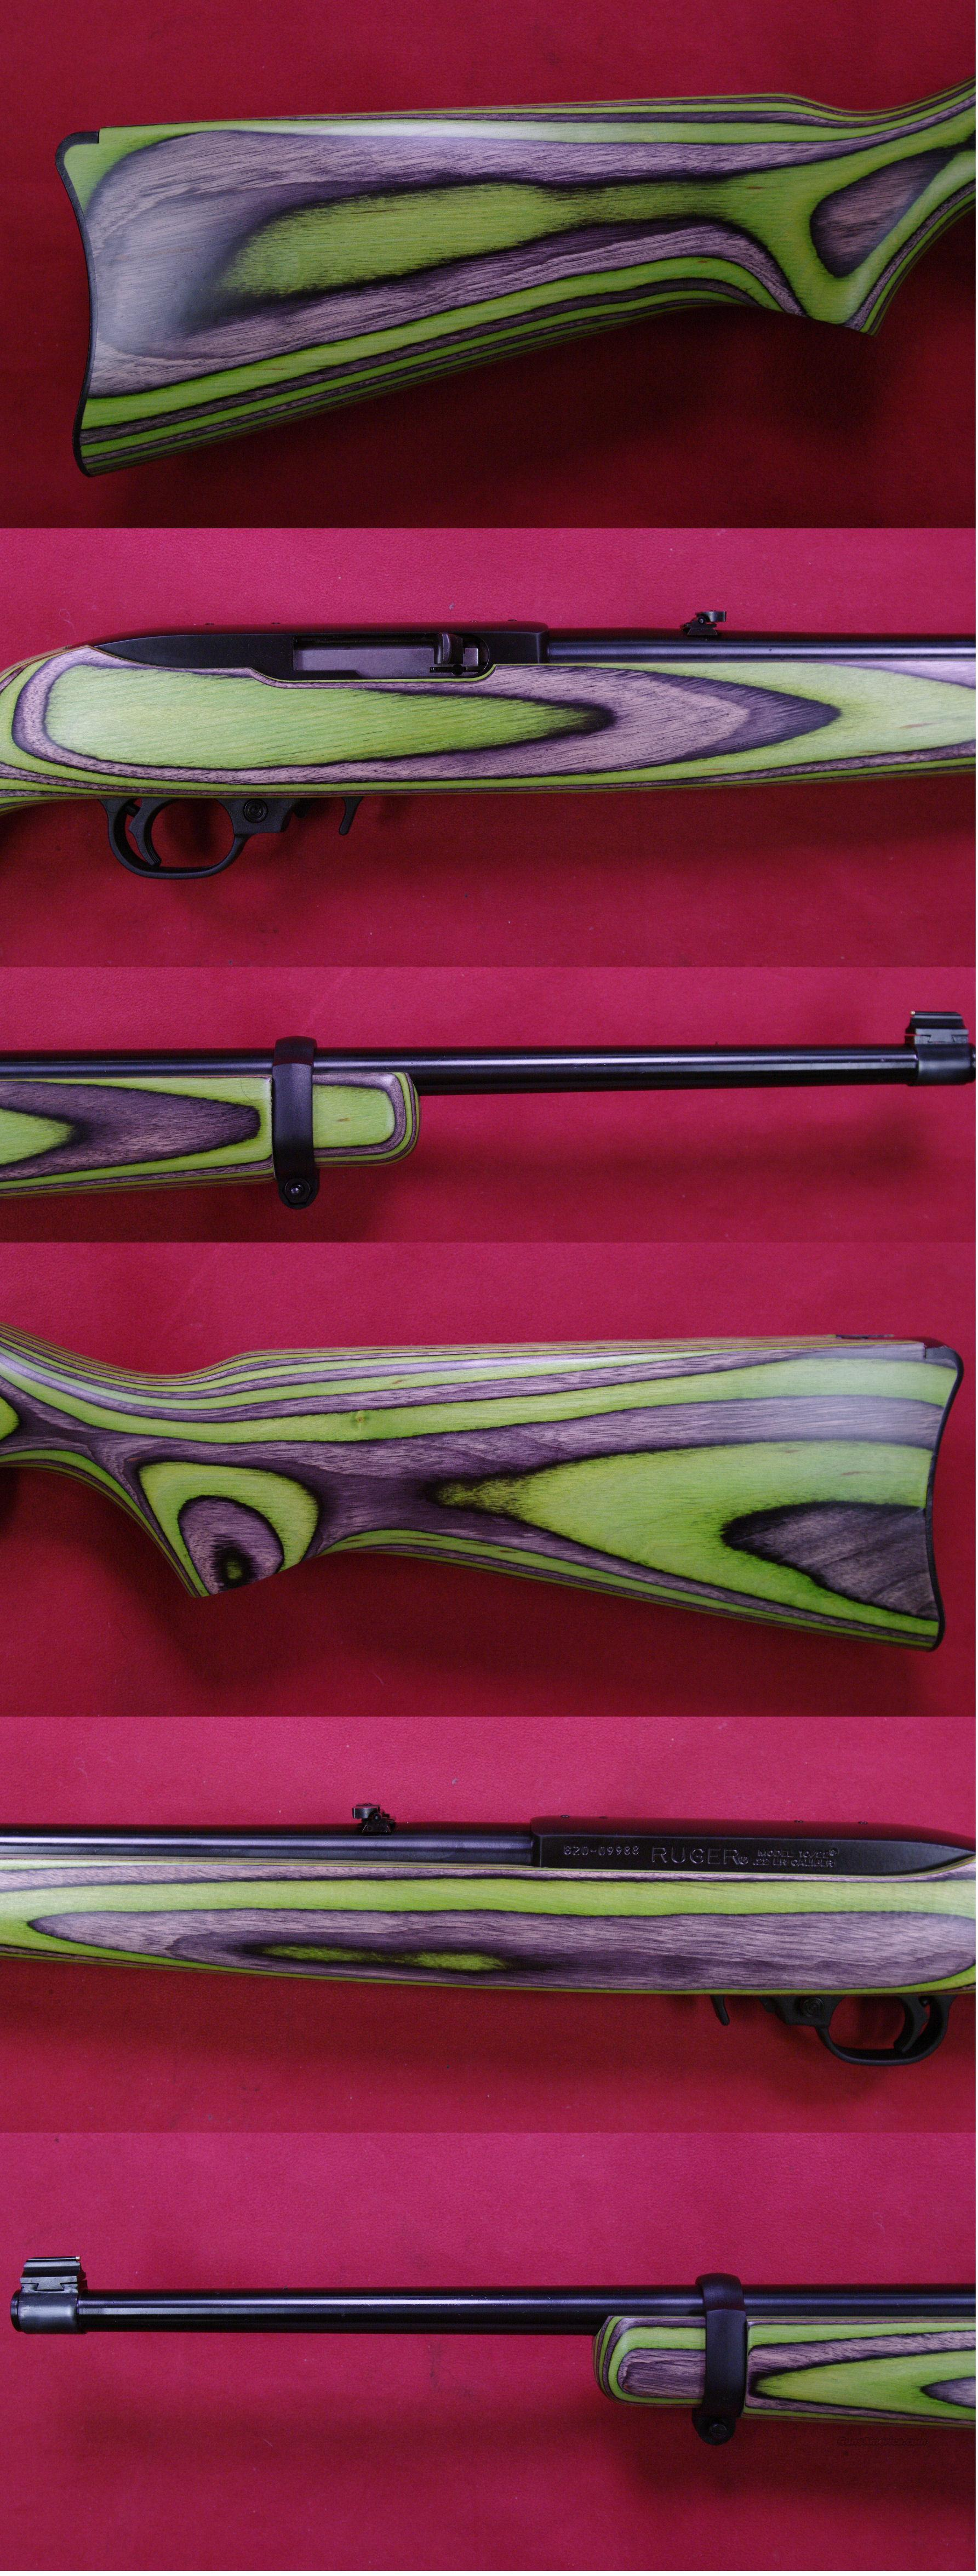 RUGER 10/22 Carbine 22LR  Black & Green Laminate Stock  Guns > Rifles > Ruger Rifles > 10-22